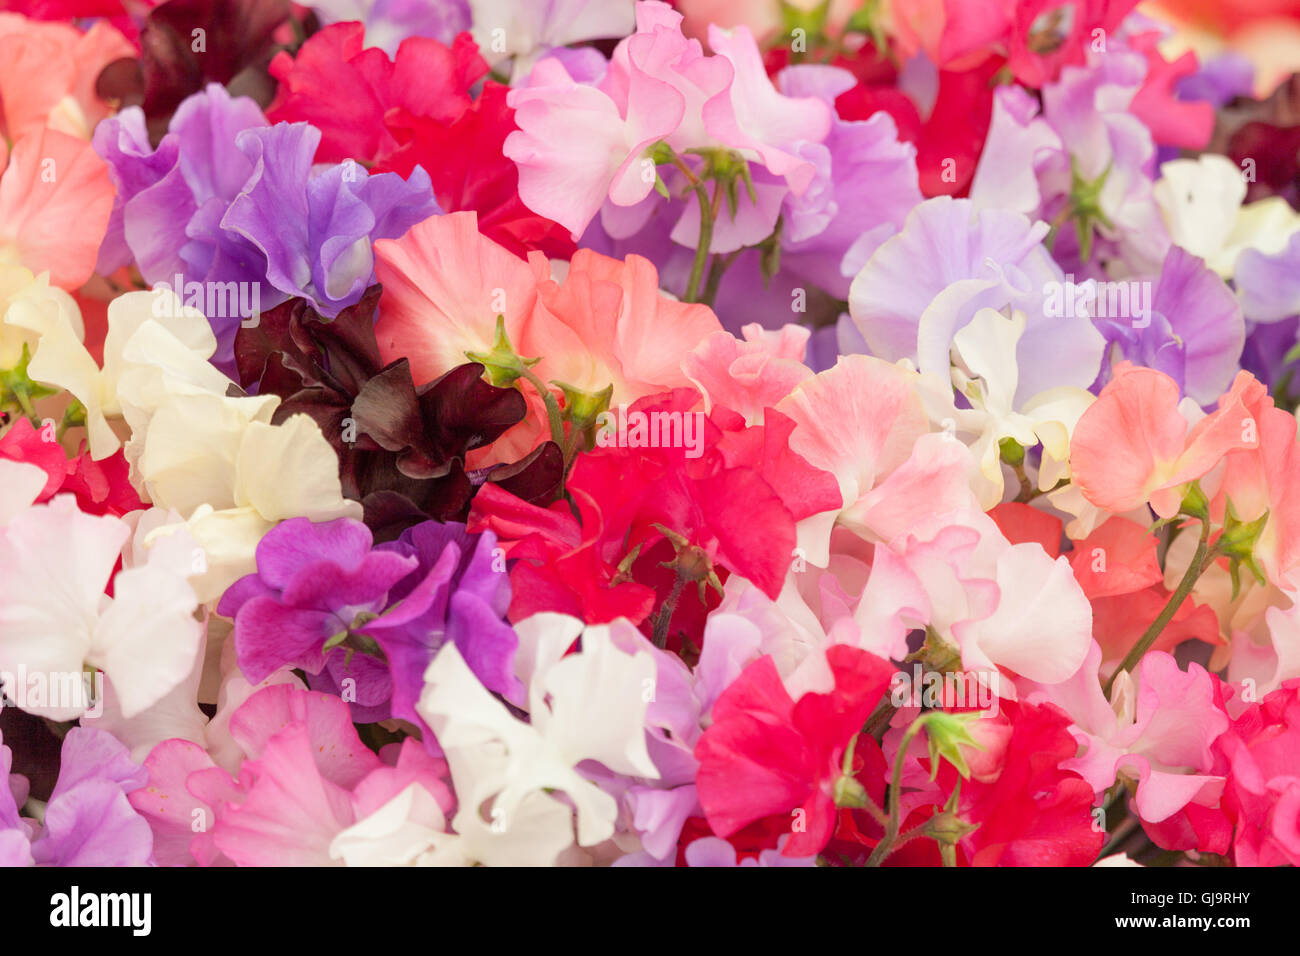 Multi Colored Flowers Beautiful Bouquet Colored Stock Photos & Multi ...